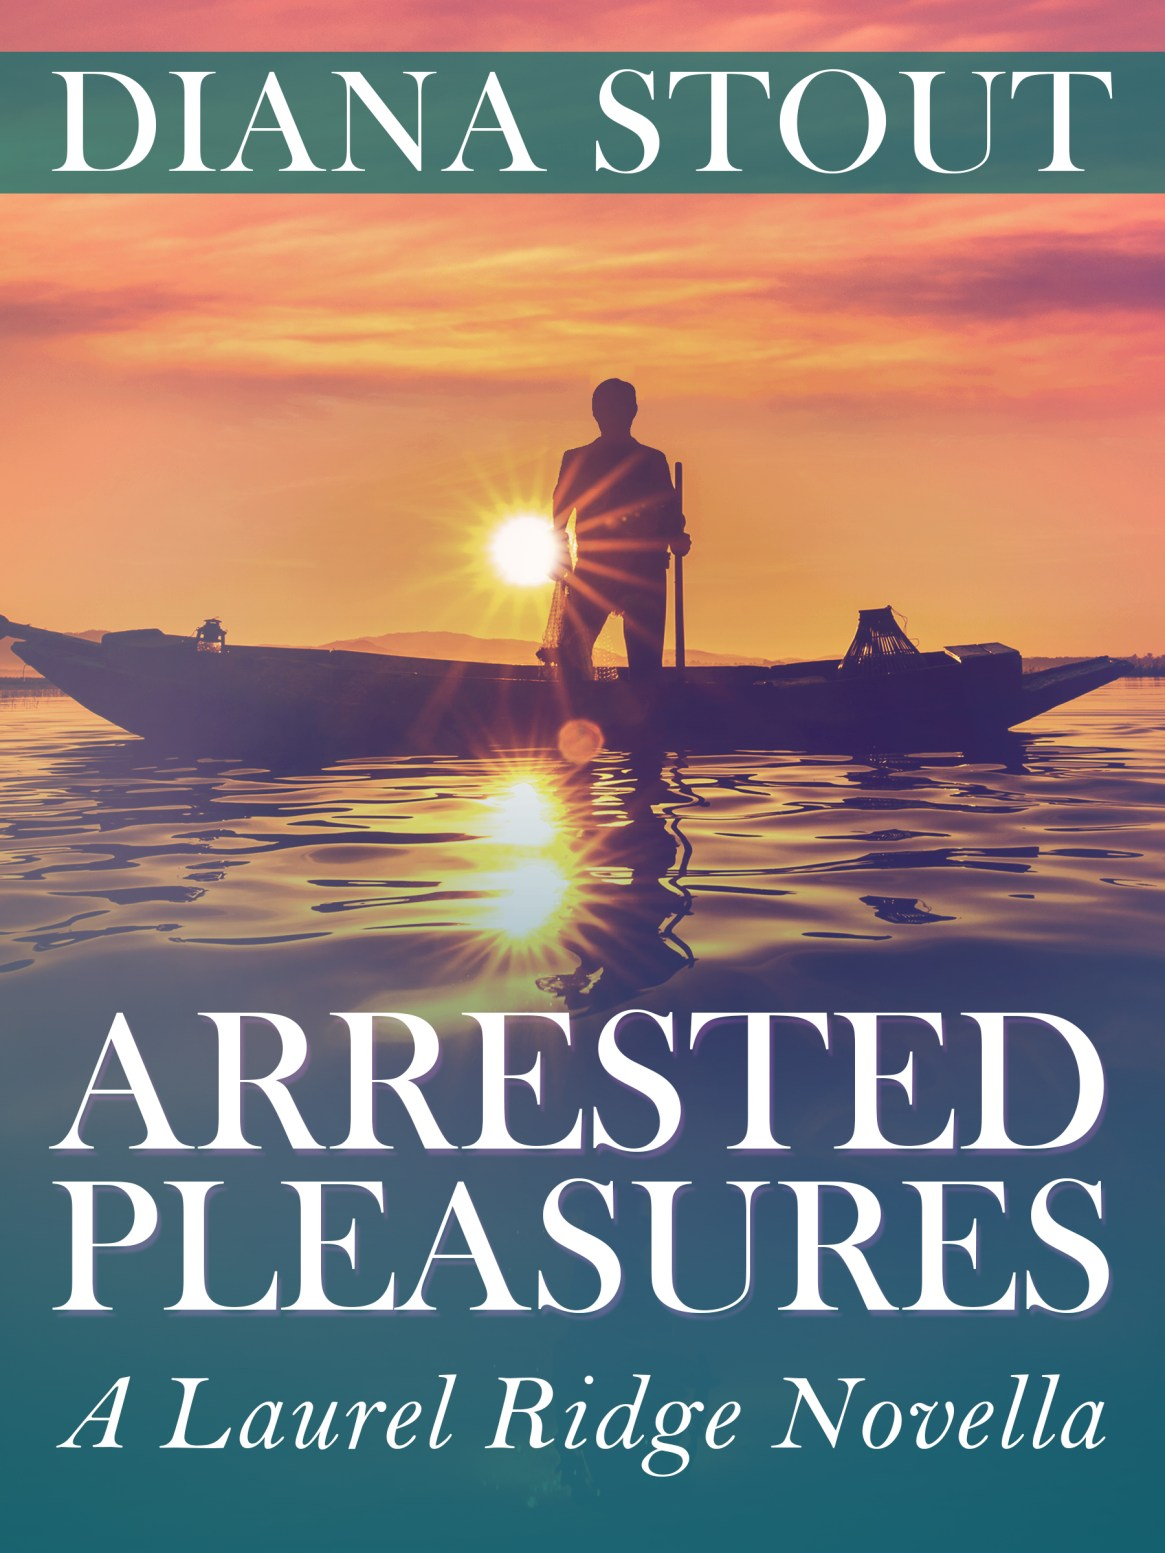 #Final #3 Arrested Pleasures - Final